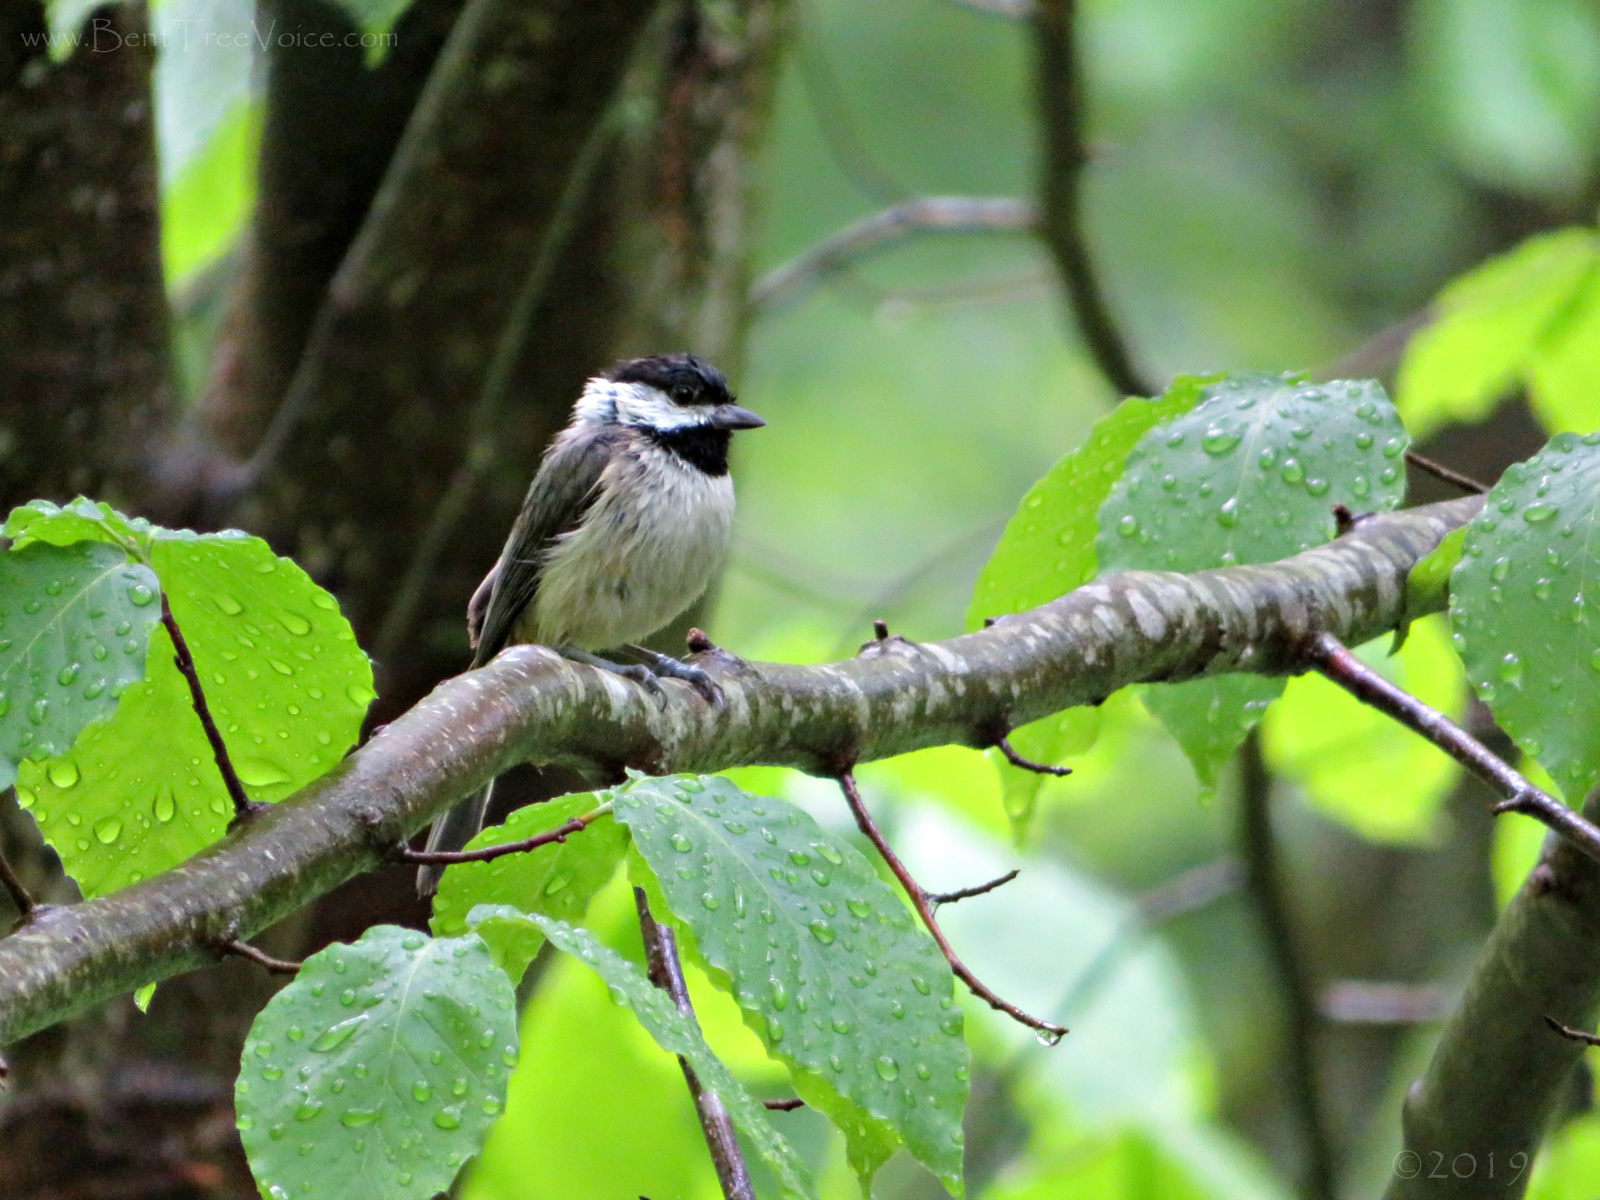 May 1, 2019 - A slightly soggy chickadee in Bent Tree